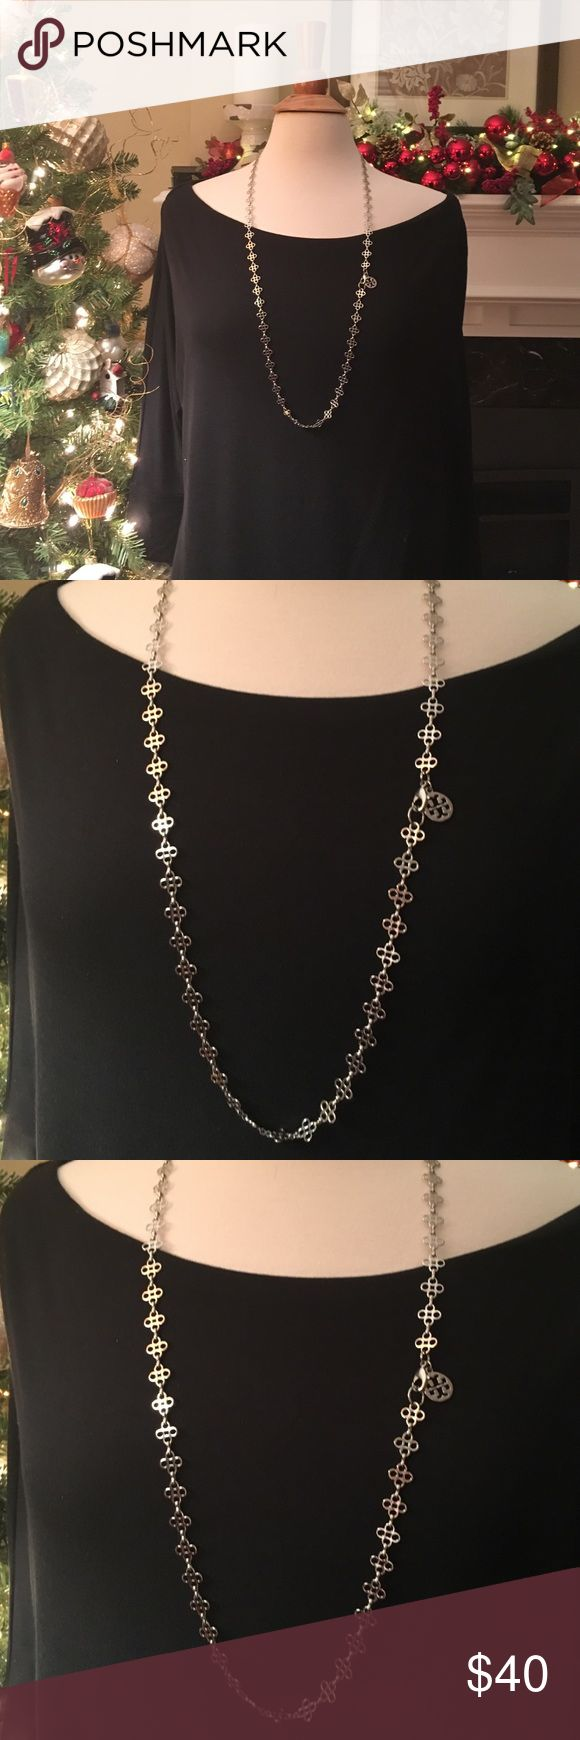 Tory burch necklace Beautiful silver Tory Burch necklace, authentic Jewelry Necklaces